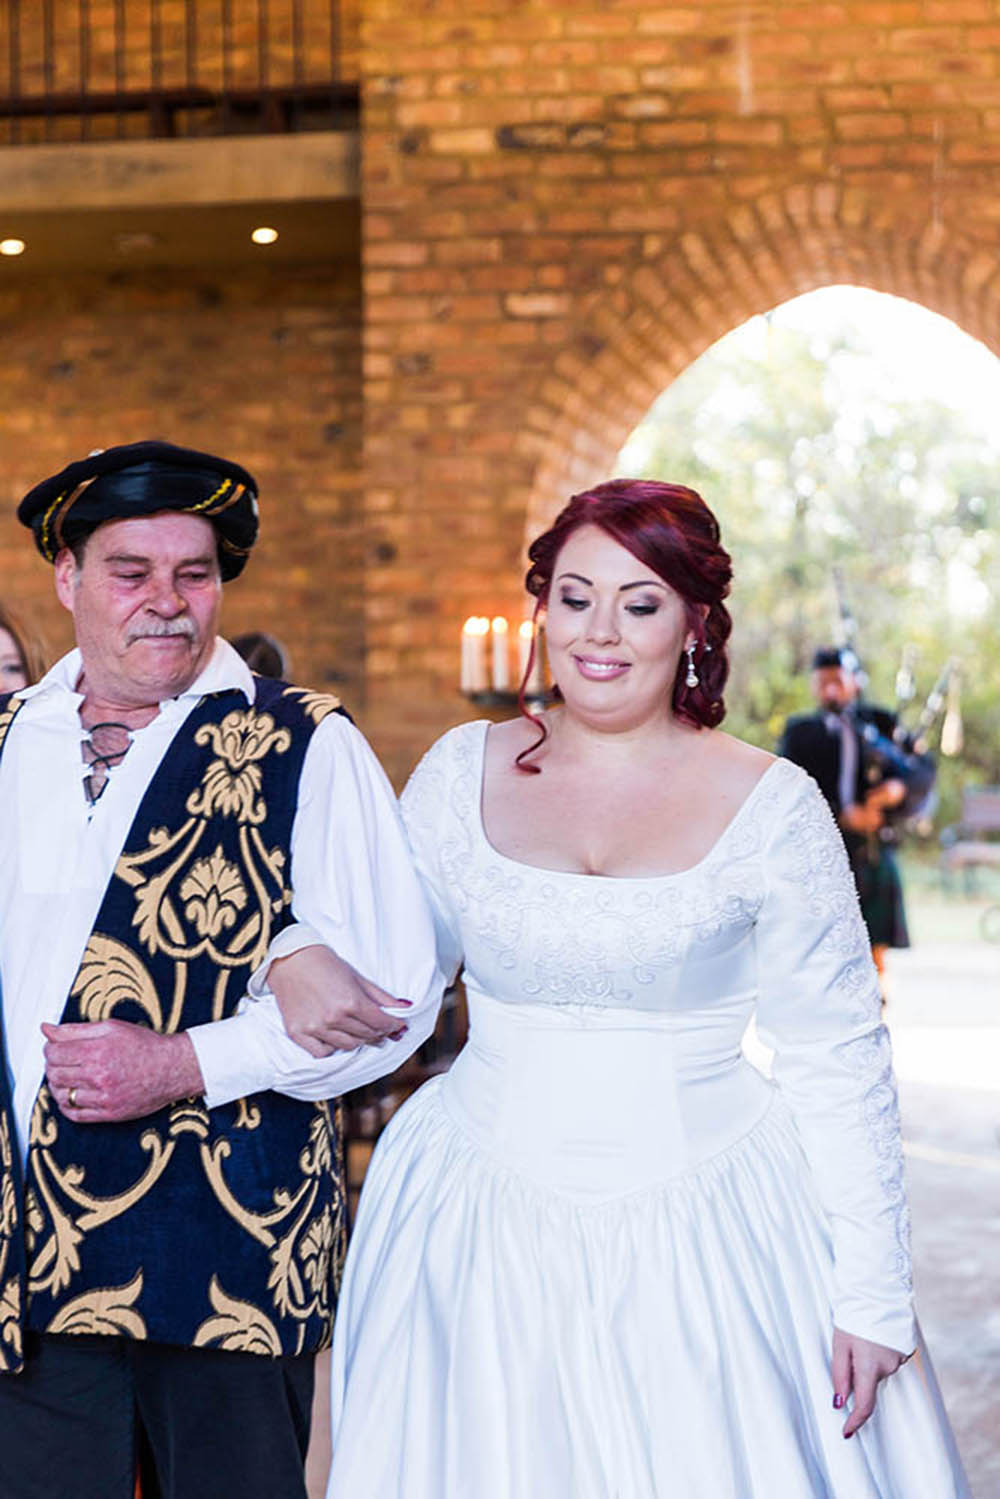 medieval-themed-wedding-medieval-wedding-dgr-photography-castle-wedding-58